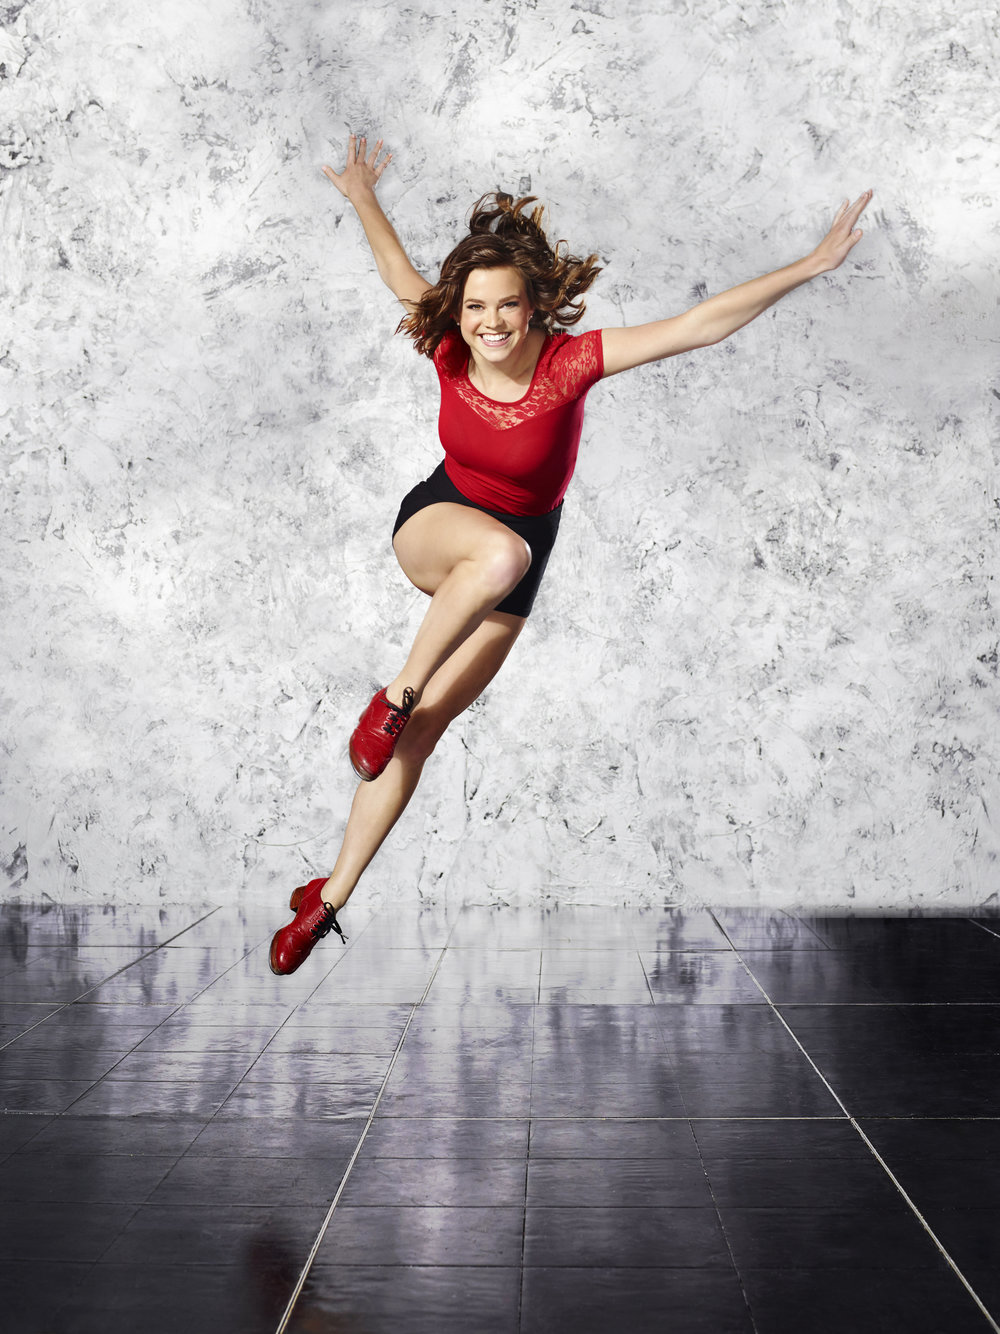 sytycd red shirt dancer .jpg